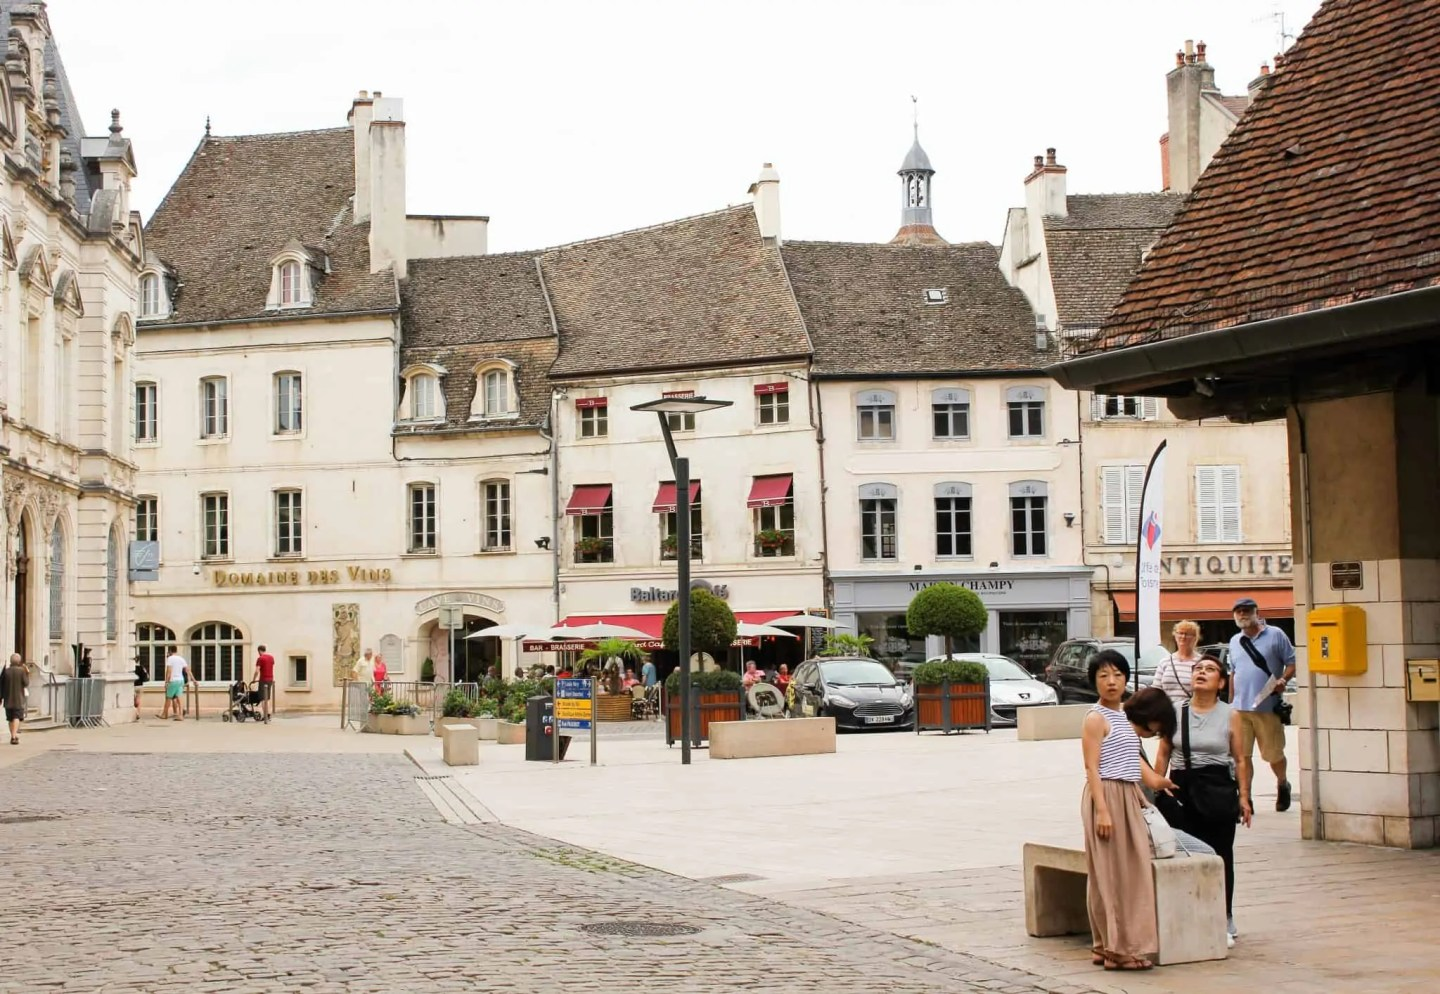 Lovely Beaune is the wine capital of Burgundy. But this guide will surprise you with activities in and around Beaune